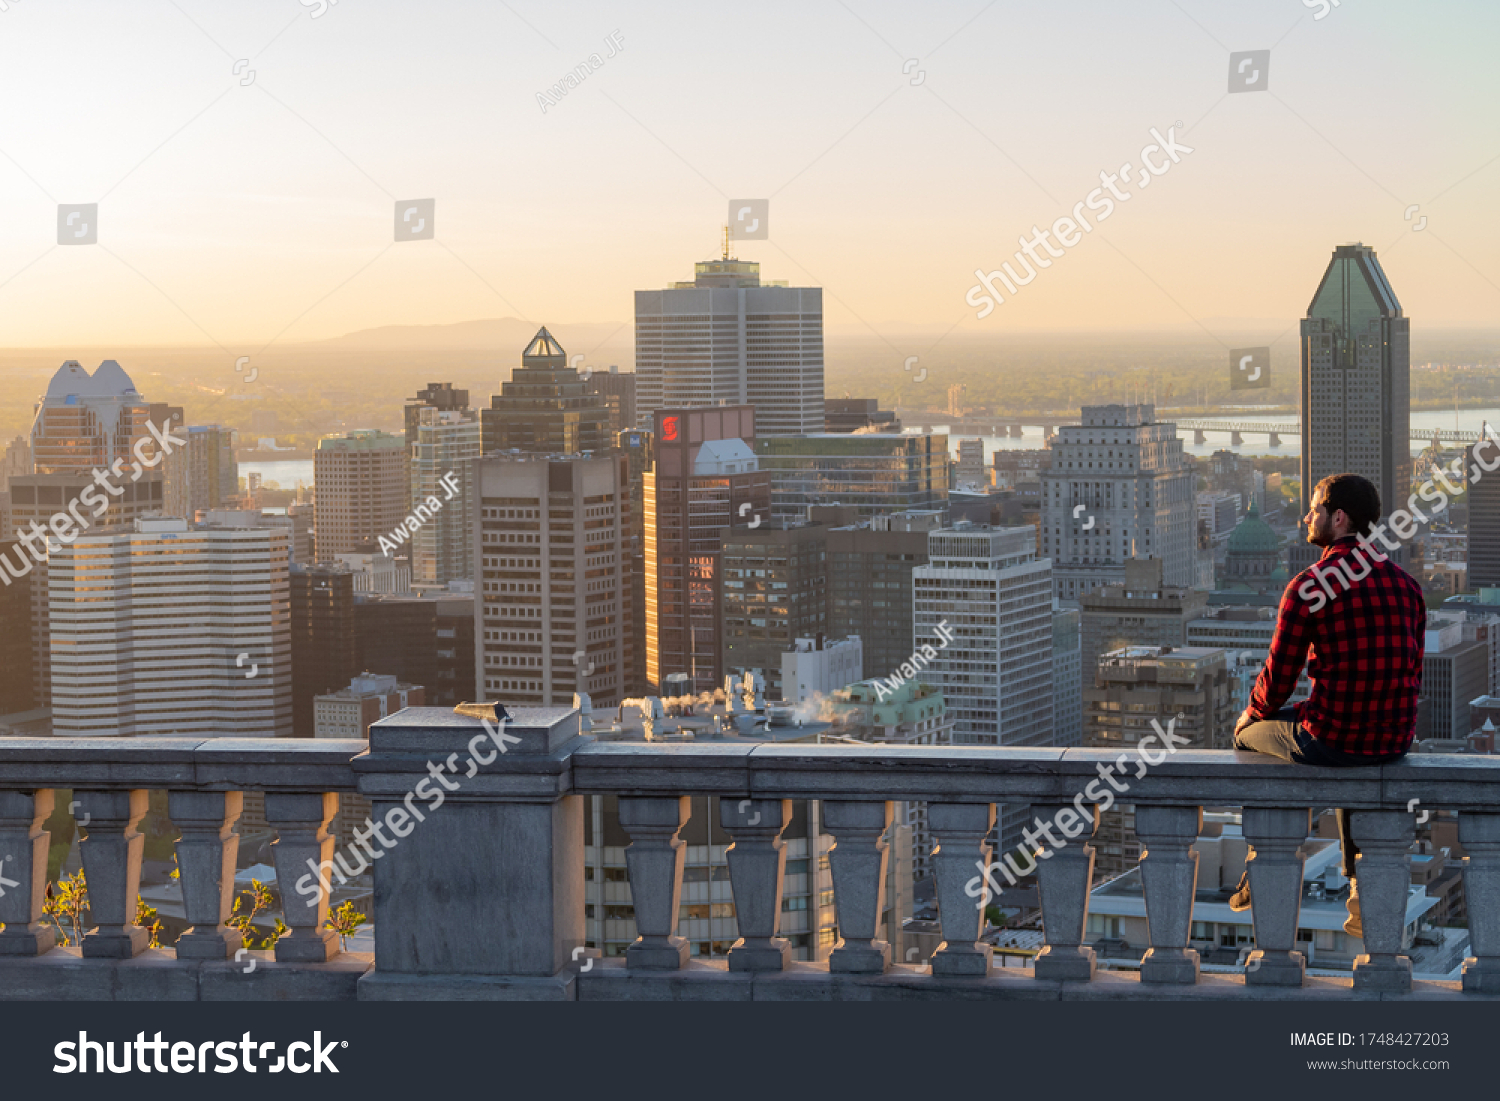 stock-photo-montreal-canada-may-back-vie